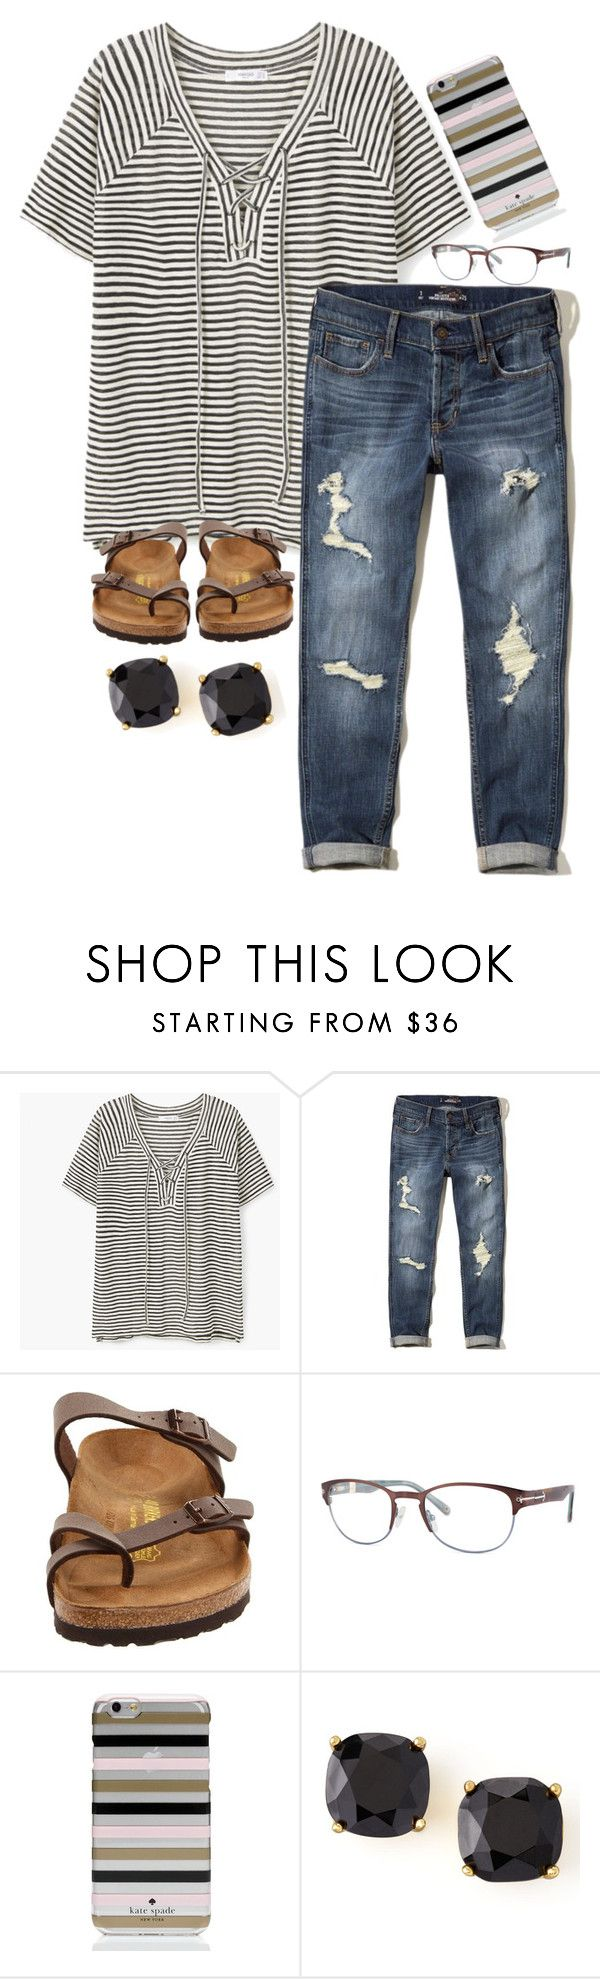 """follow up on your promises"" by legitimately-kierstin ❤ liked on Polyvore featuring MANGO, Hollister Co., Birkenstock, Sperry and Kate Spade"